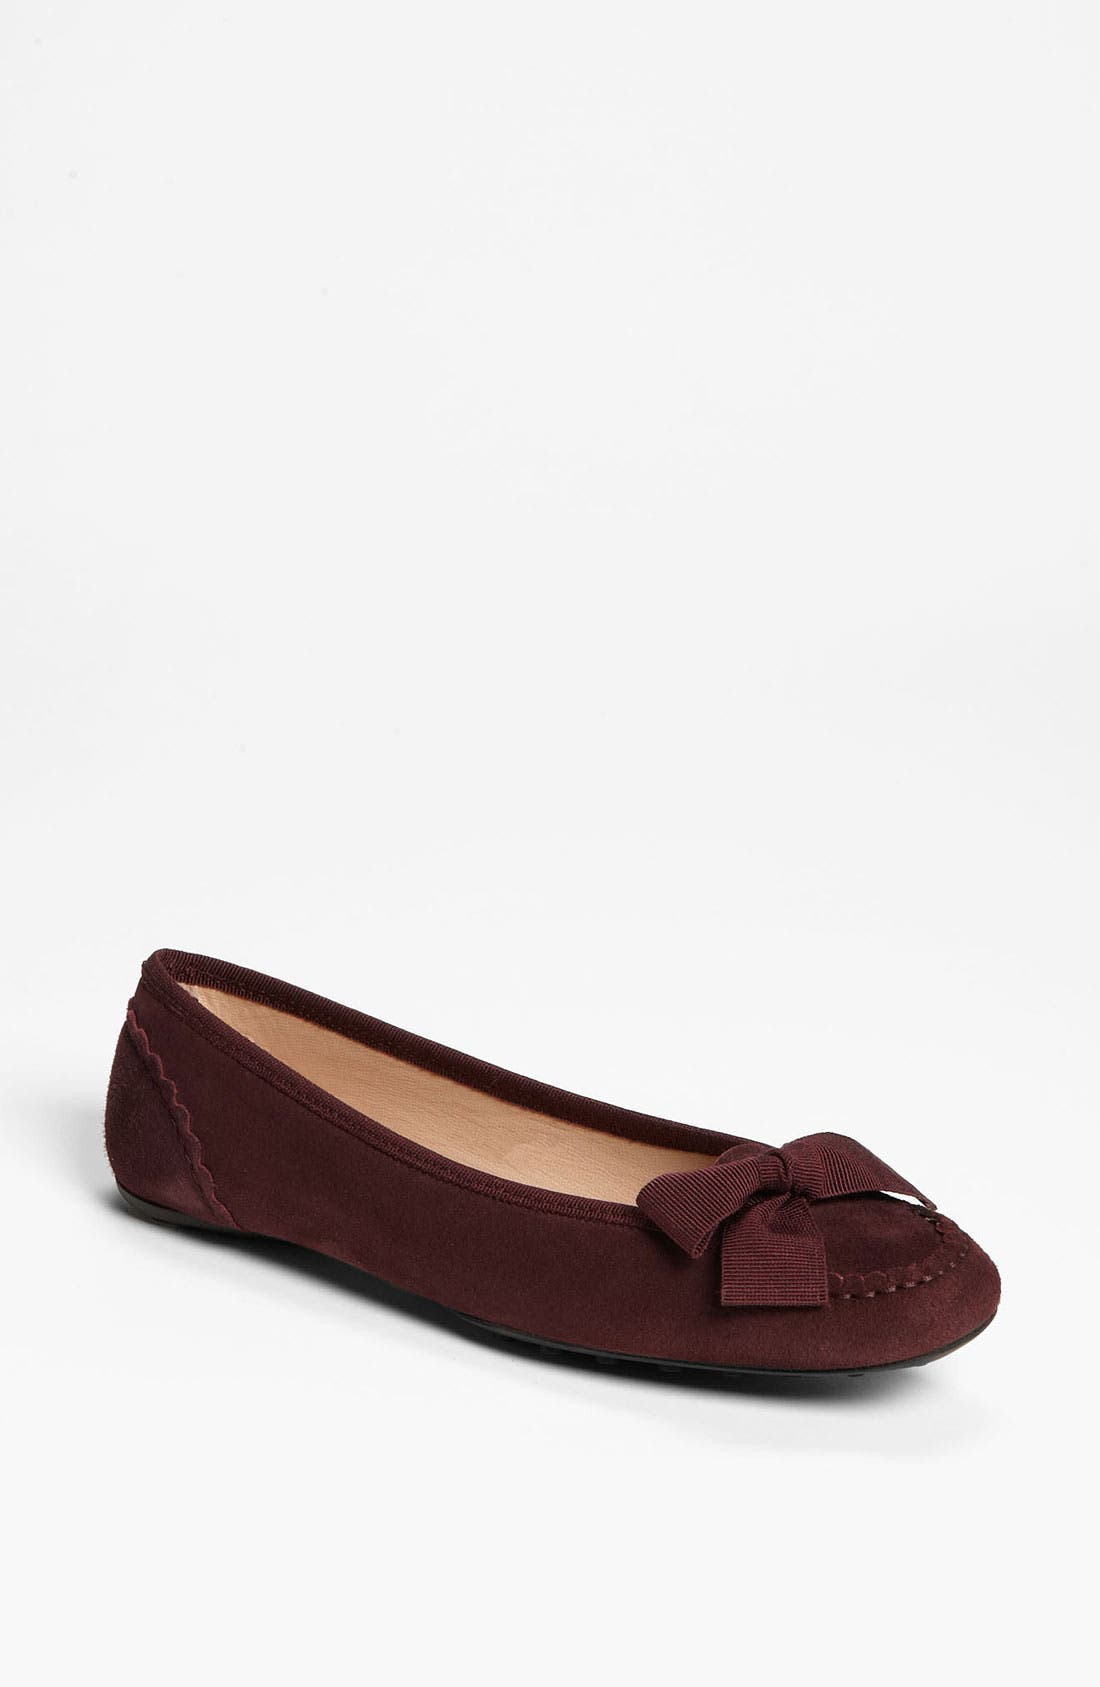 Alternate Image 1 Selected - Sweet Ballerina Moccasin Flat